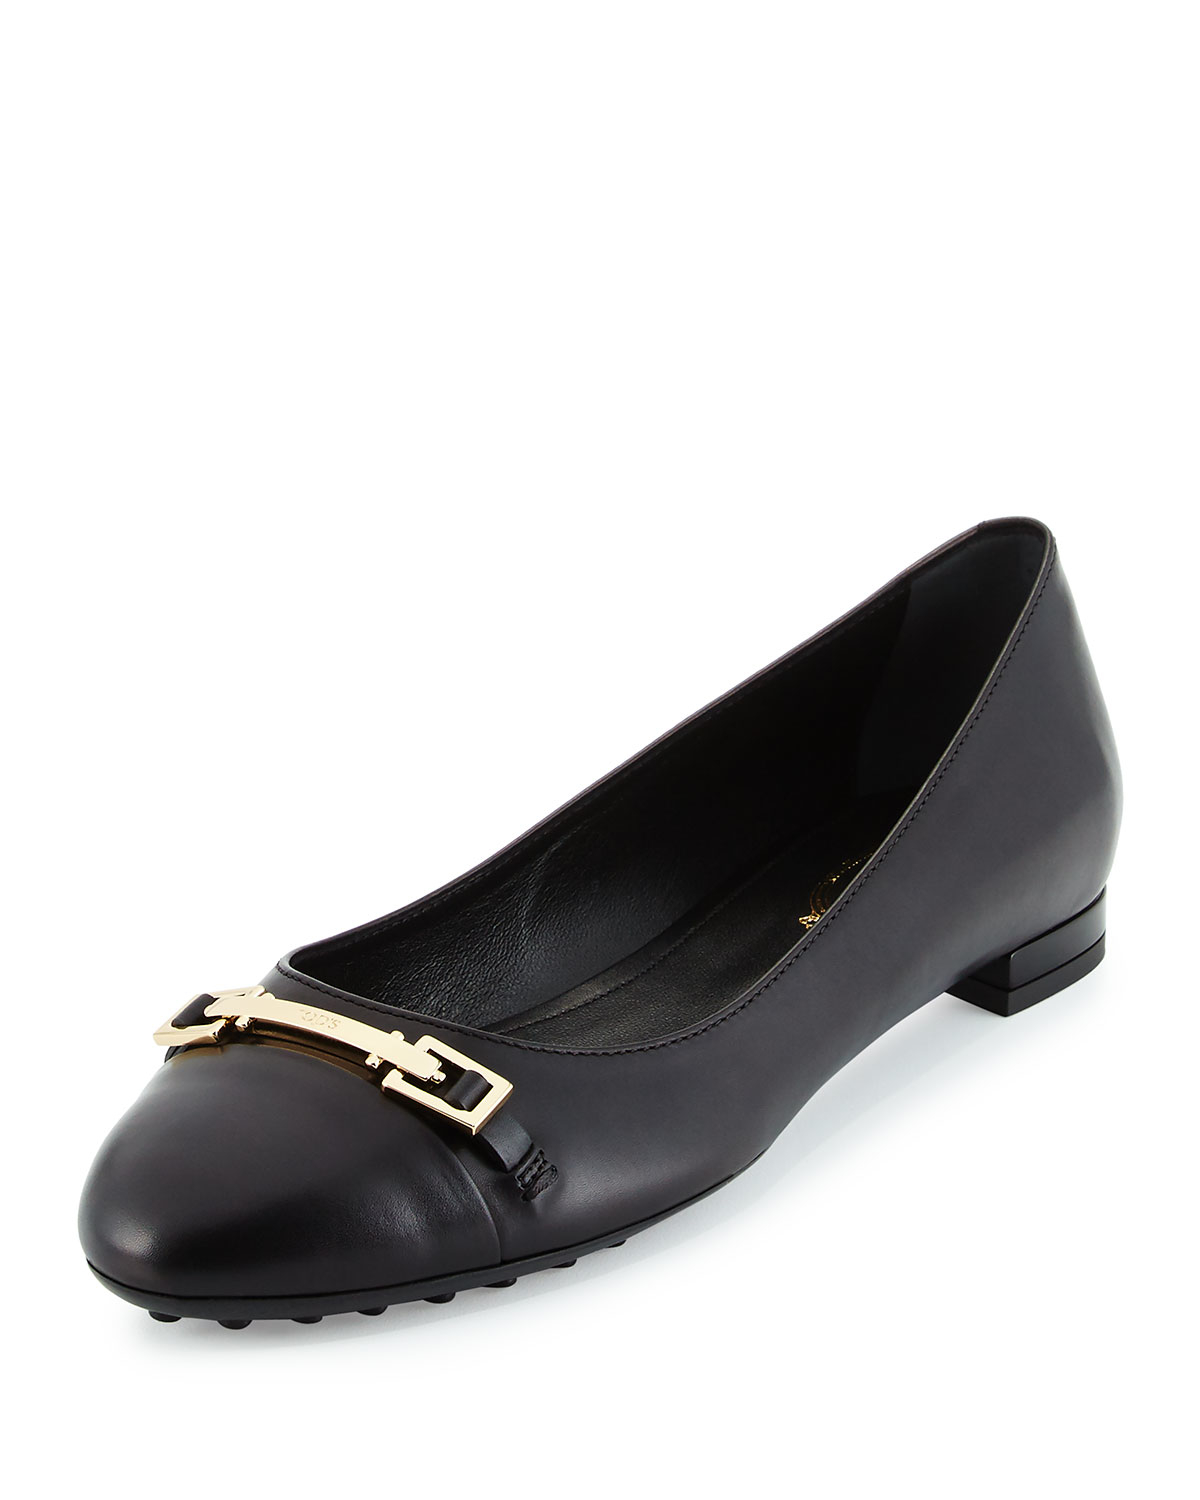 discount wholesale price Tod's Leather Ballet Flats top quality sale footaction outlet reliable 49c6ij